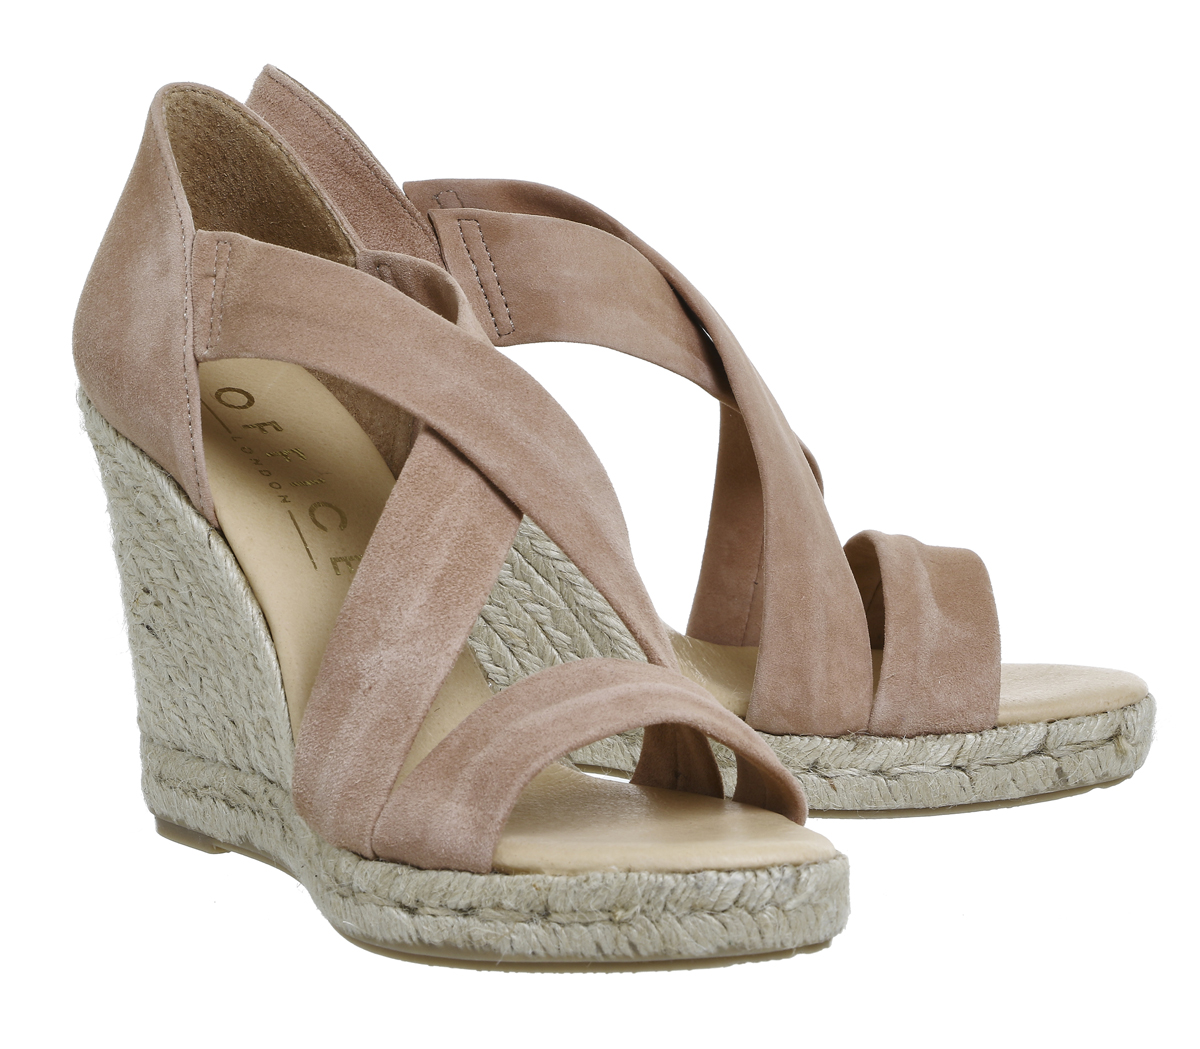 370fc533985 Womens Office Holiday Wedge Espadrilles NUDE KID SUEDE Heels